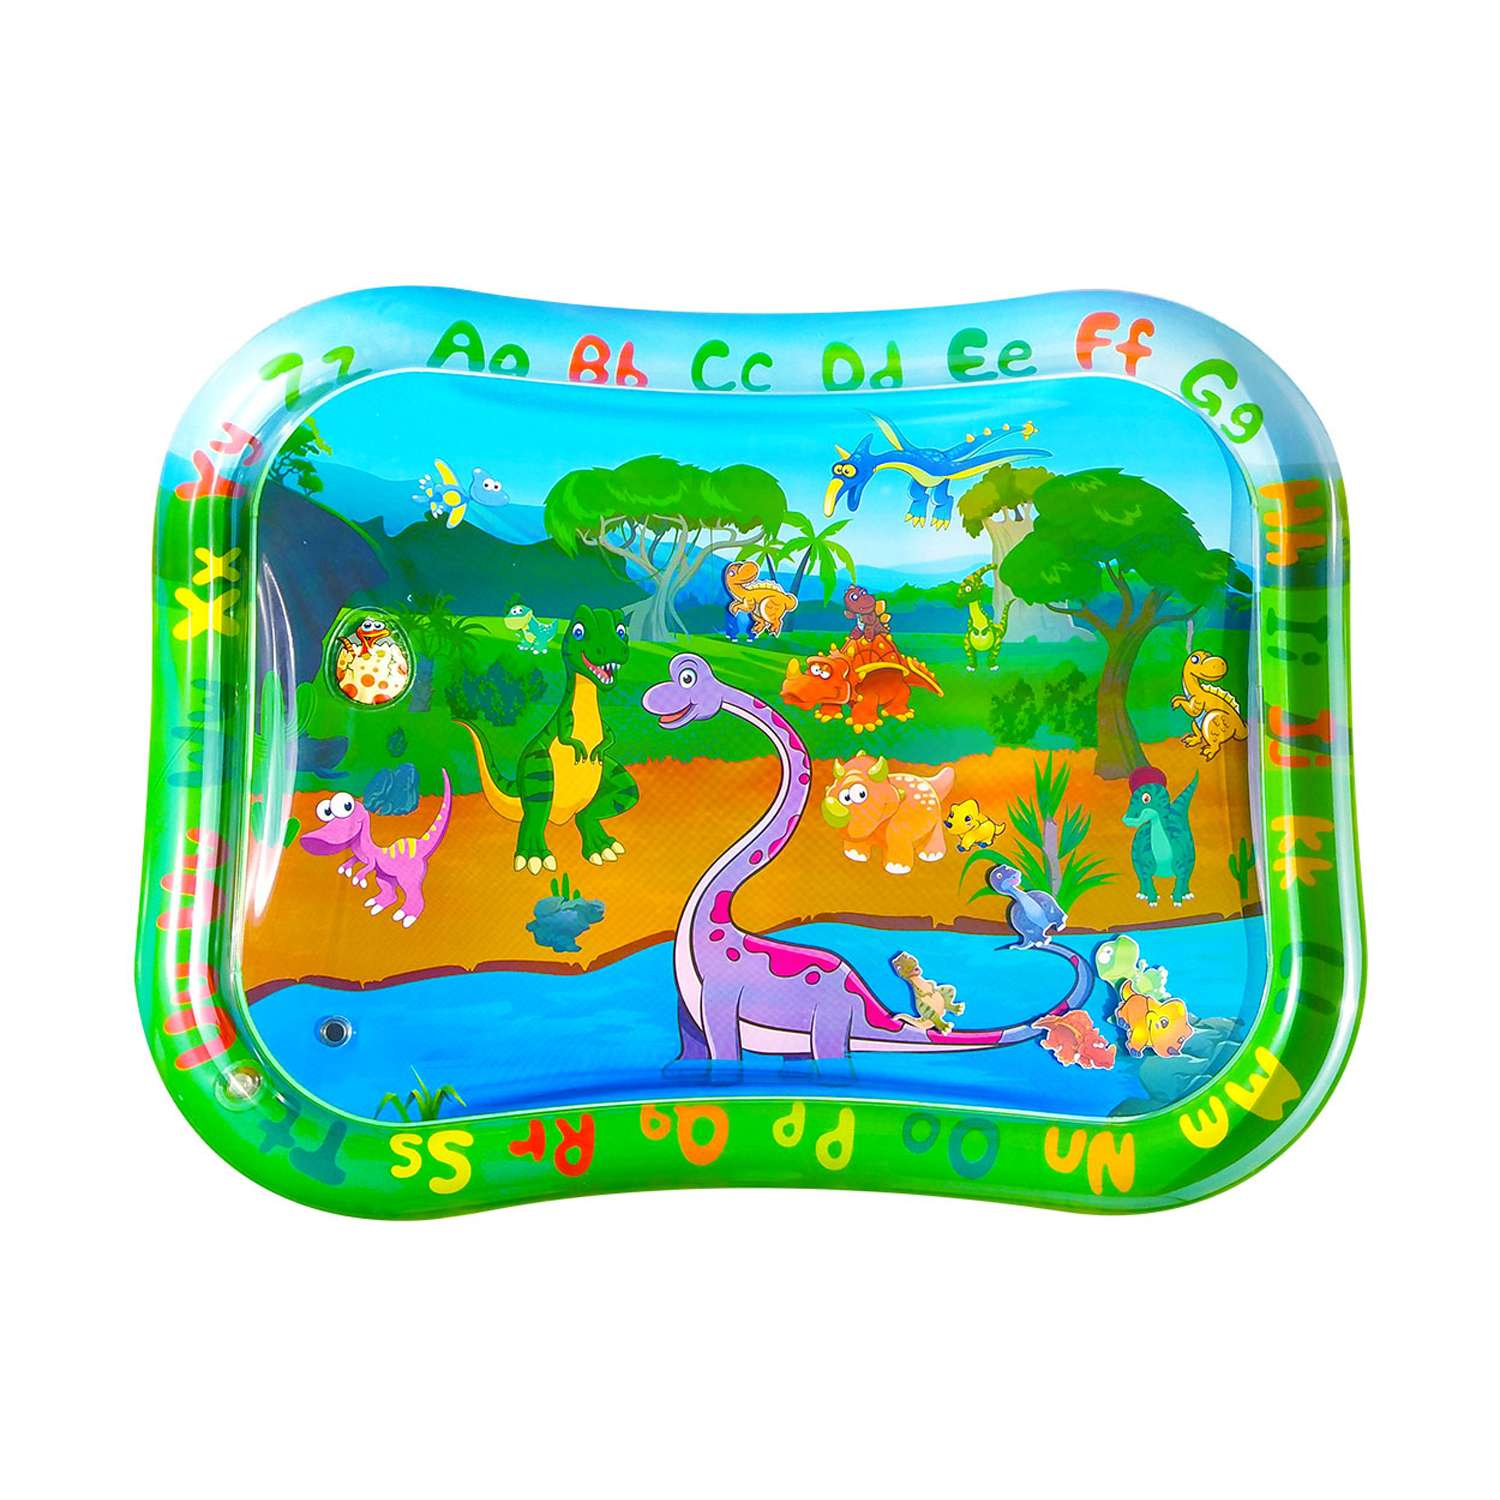 Childrens Fun Inflatable Water Play Mat   HOM-47332